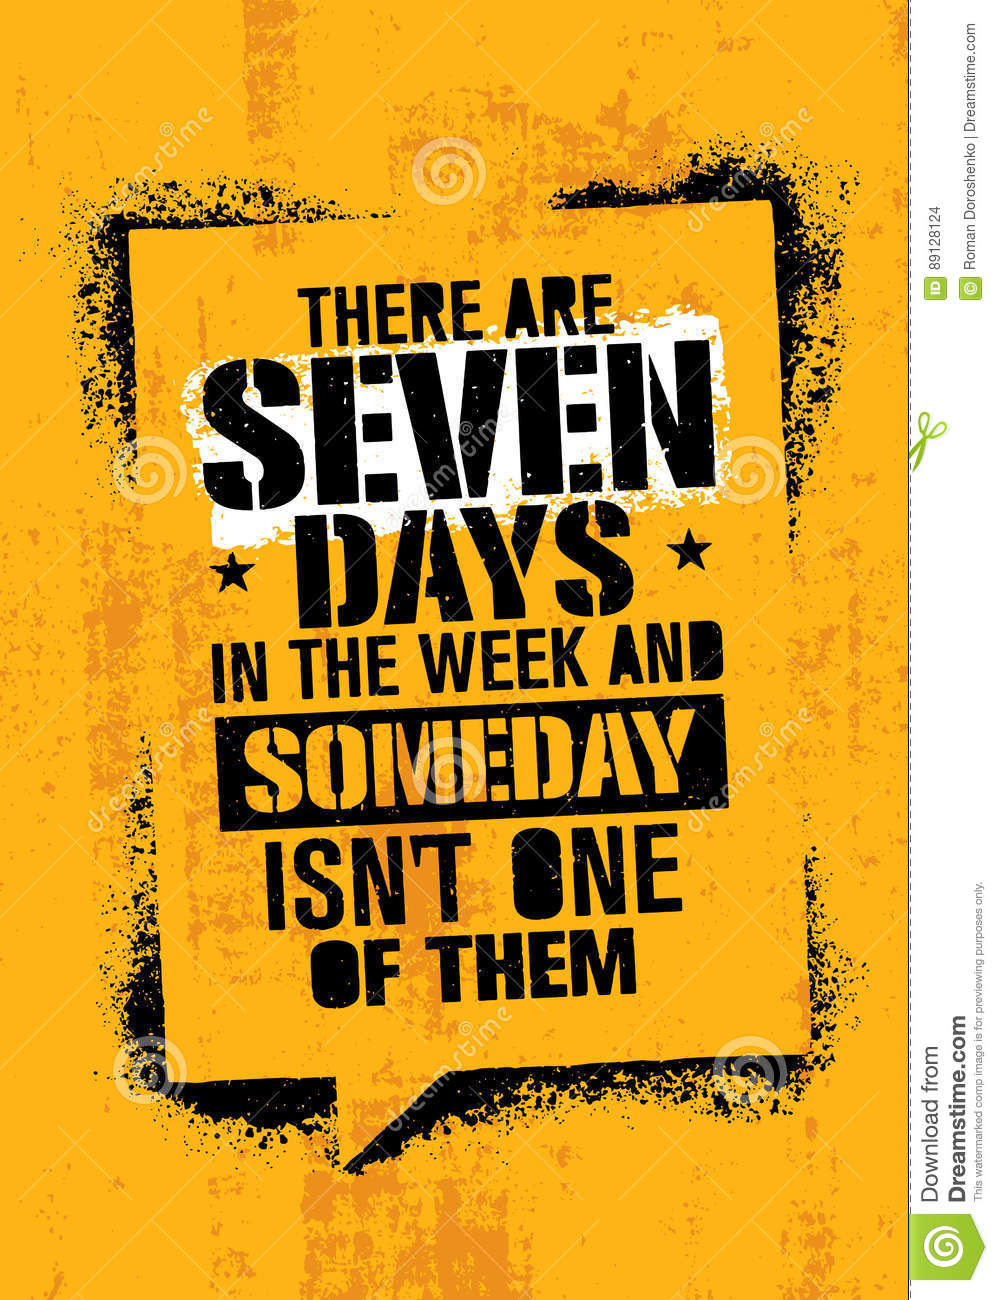 There Are Seven Days In The Week And Someday Is Not One Of Them